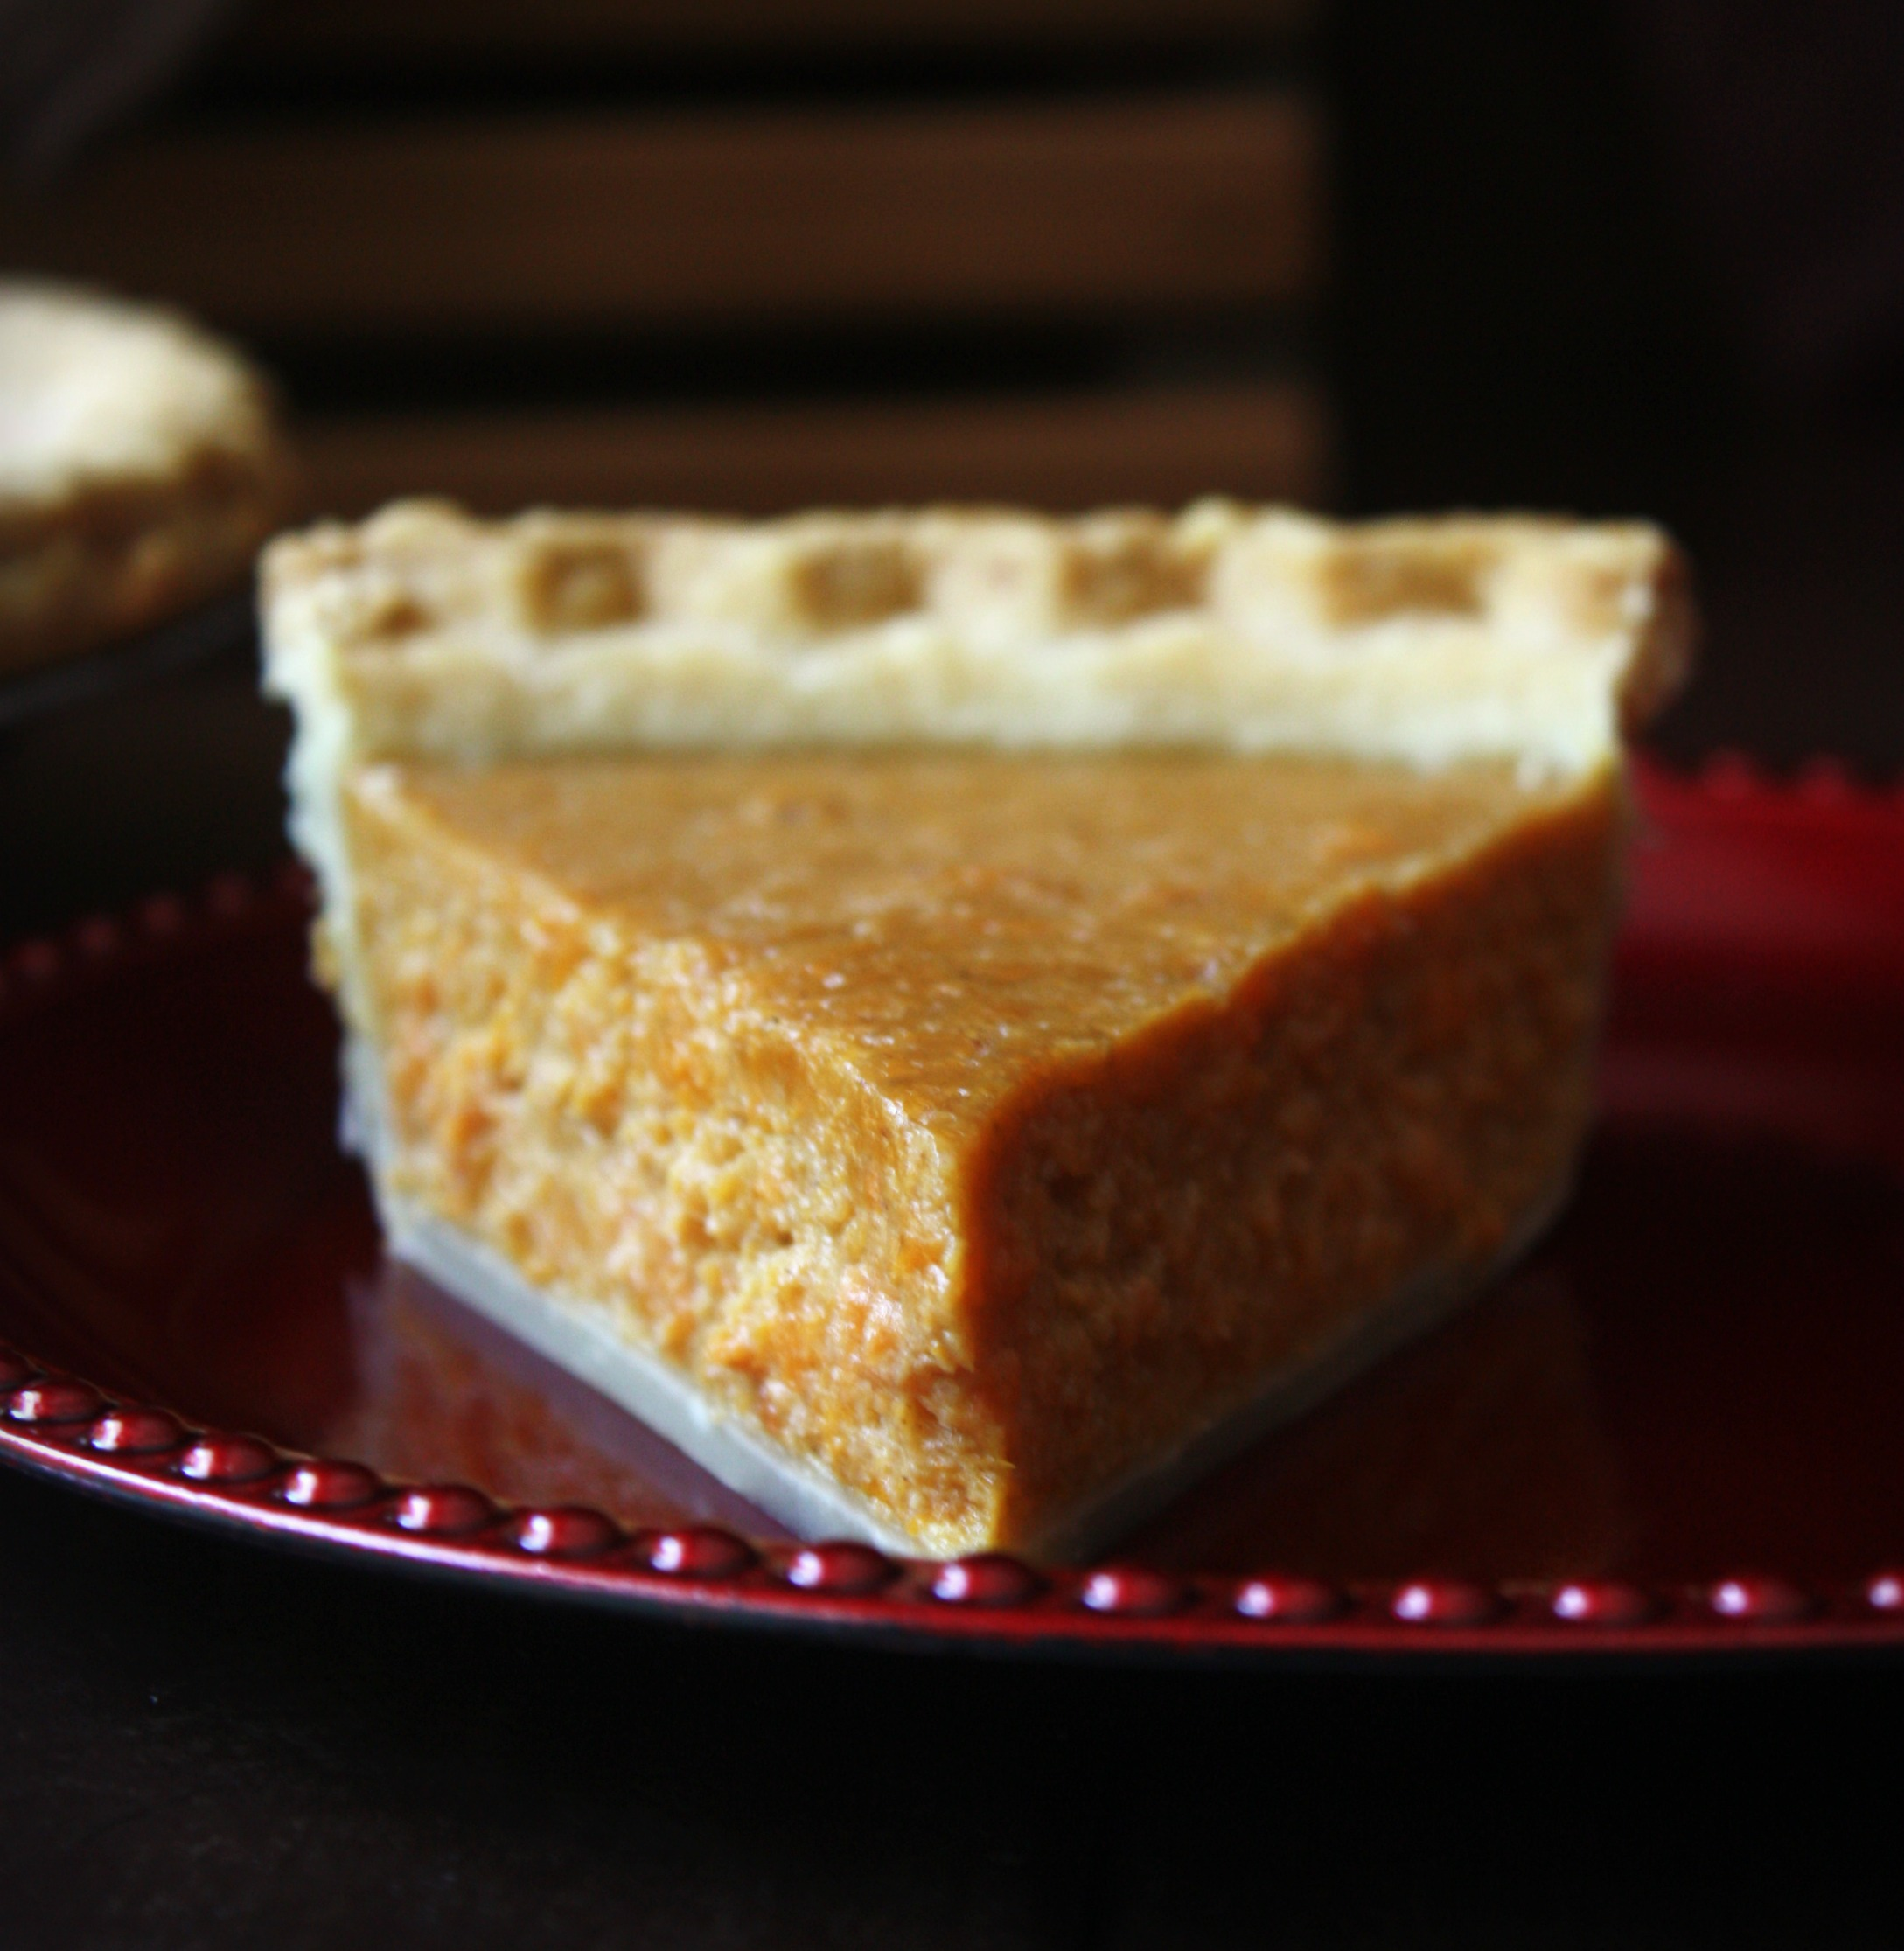 This Sweet Potato Pie is spiced with cinnamon and nutmeg with hints of vanilla and molasses. This traditional Southern dessert is perfect for Thanksgiving and Christmas holidays.